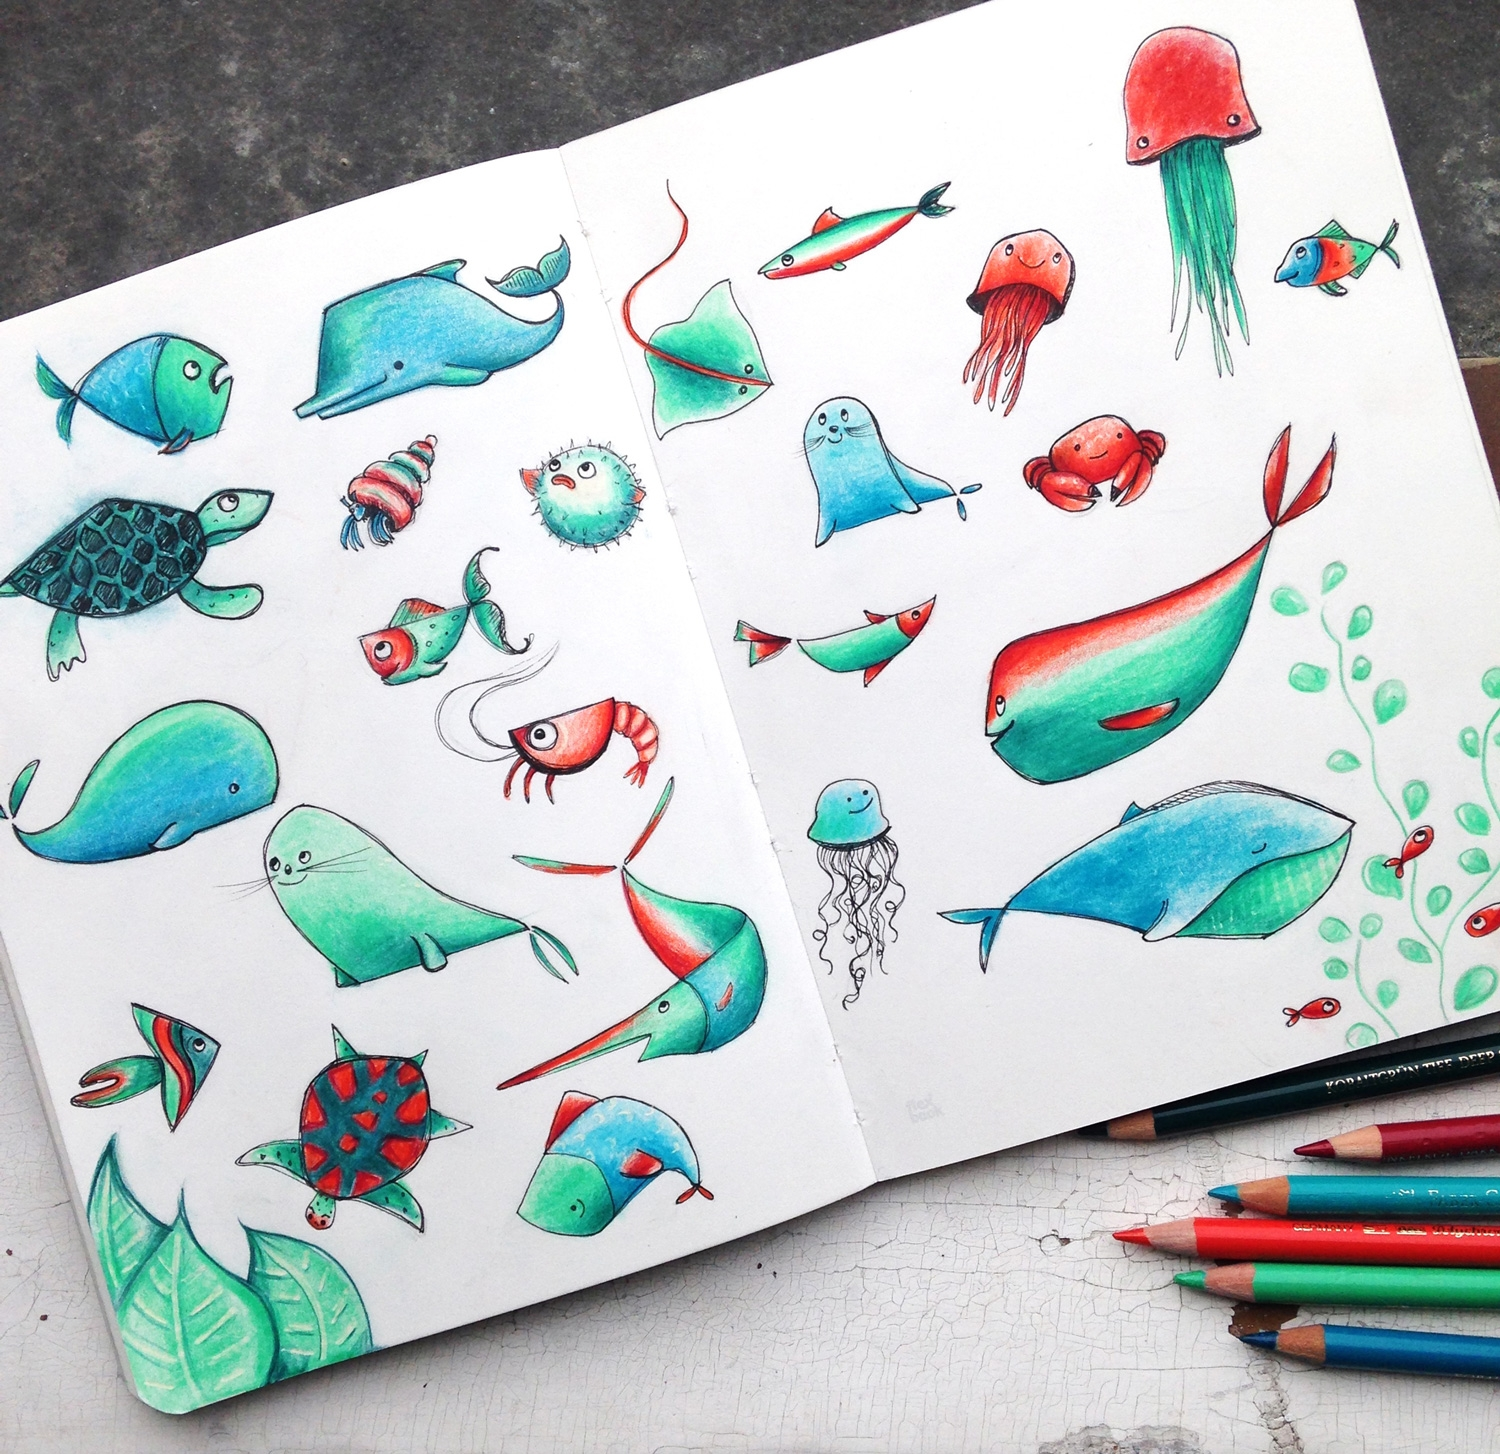 10 Tips For Drawing With Coloured Pencils Digital Arts